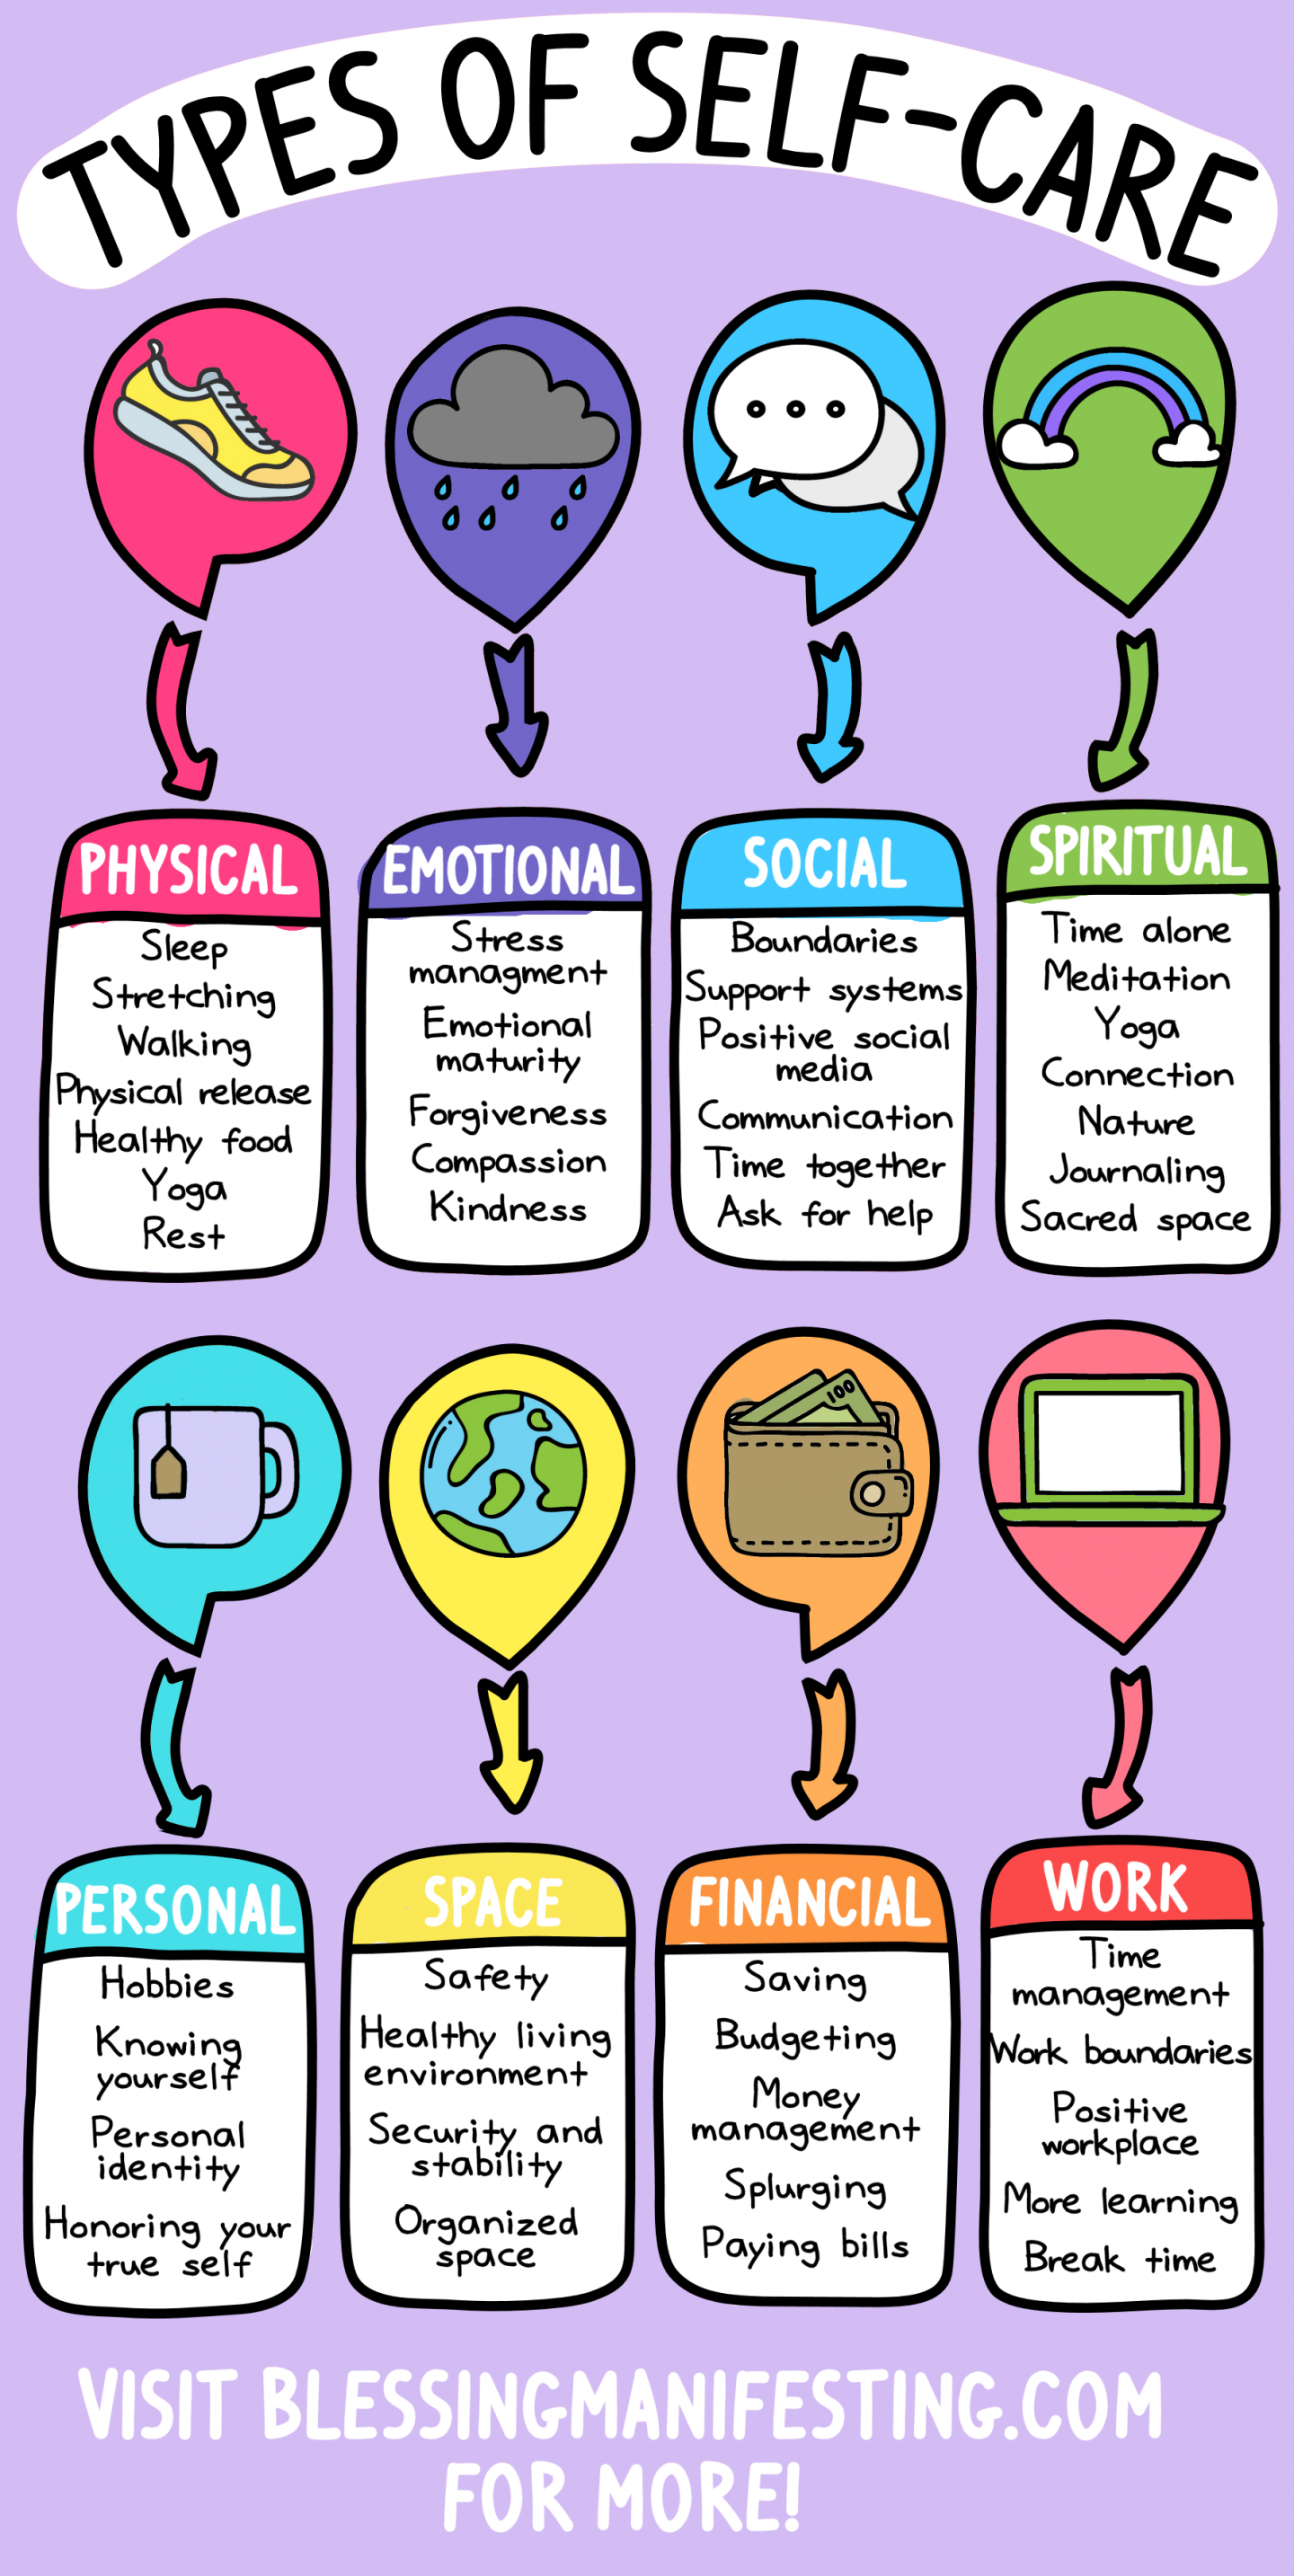 6 Types of Self-Care You Need to Know #selfcare #selflove